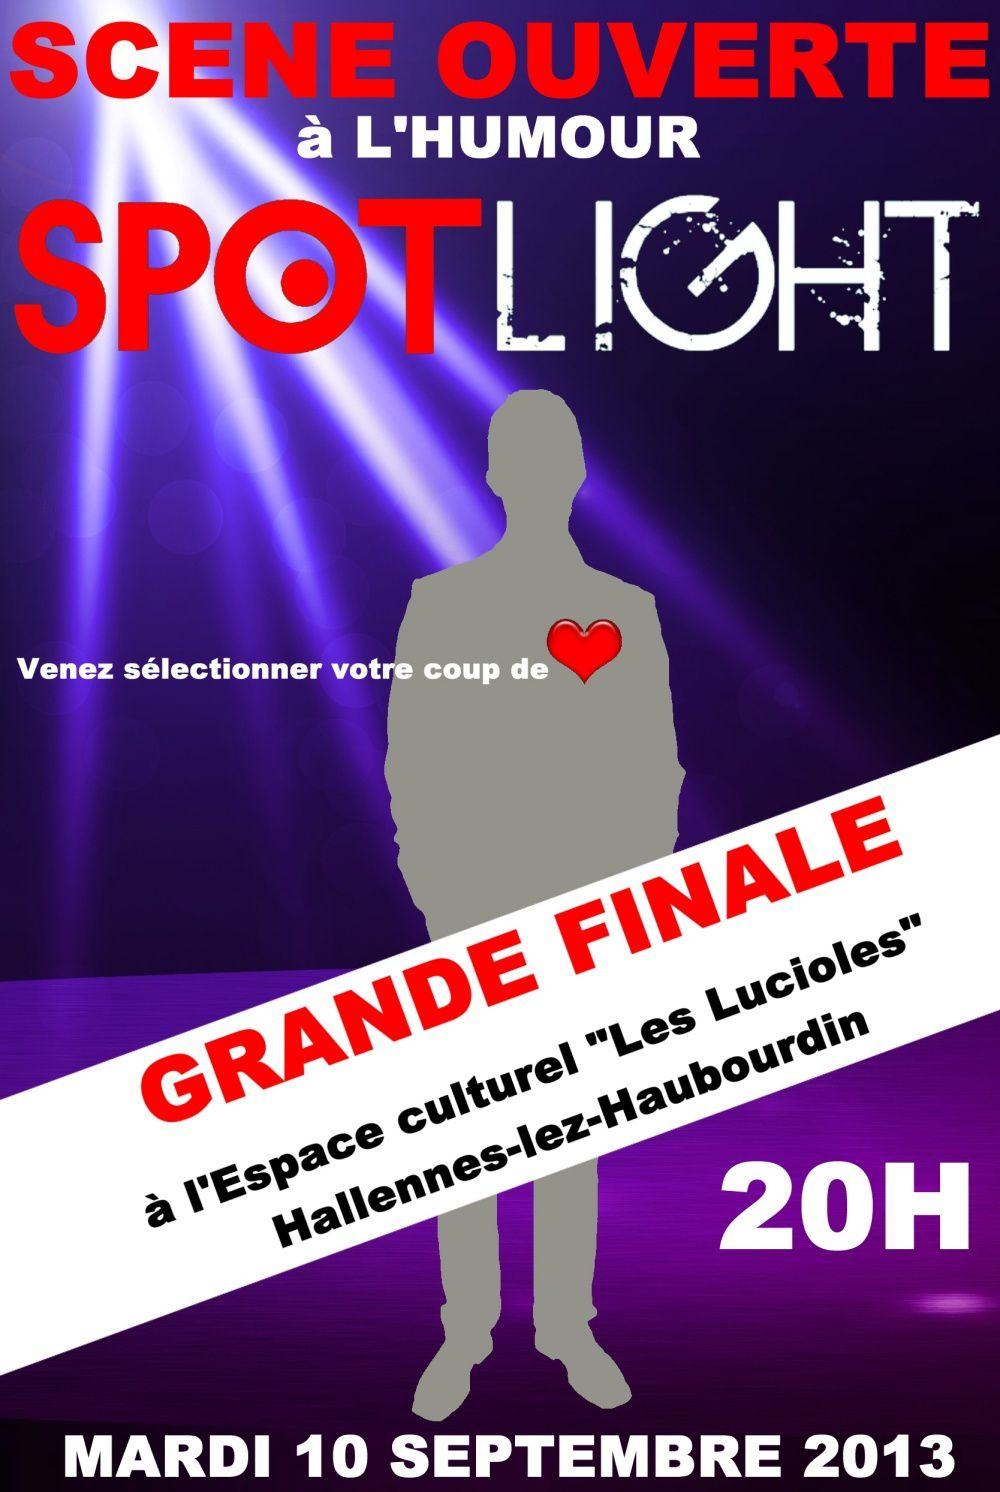 Spotlight - Evenements rentrée 2013